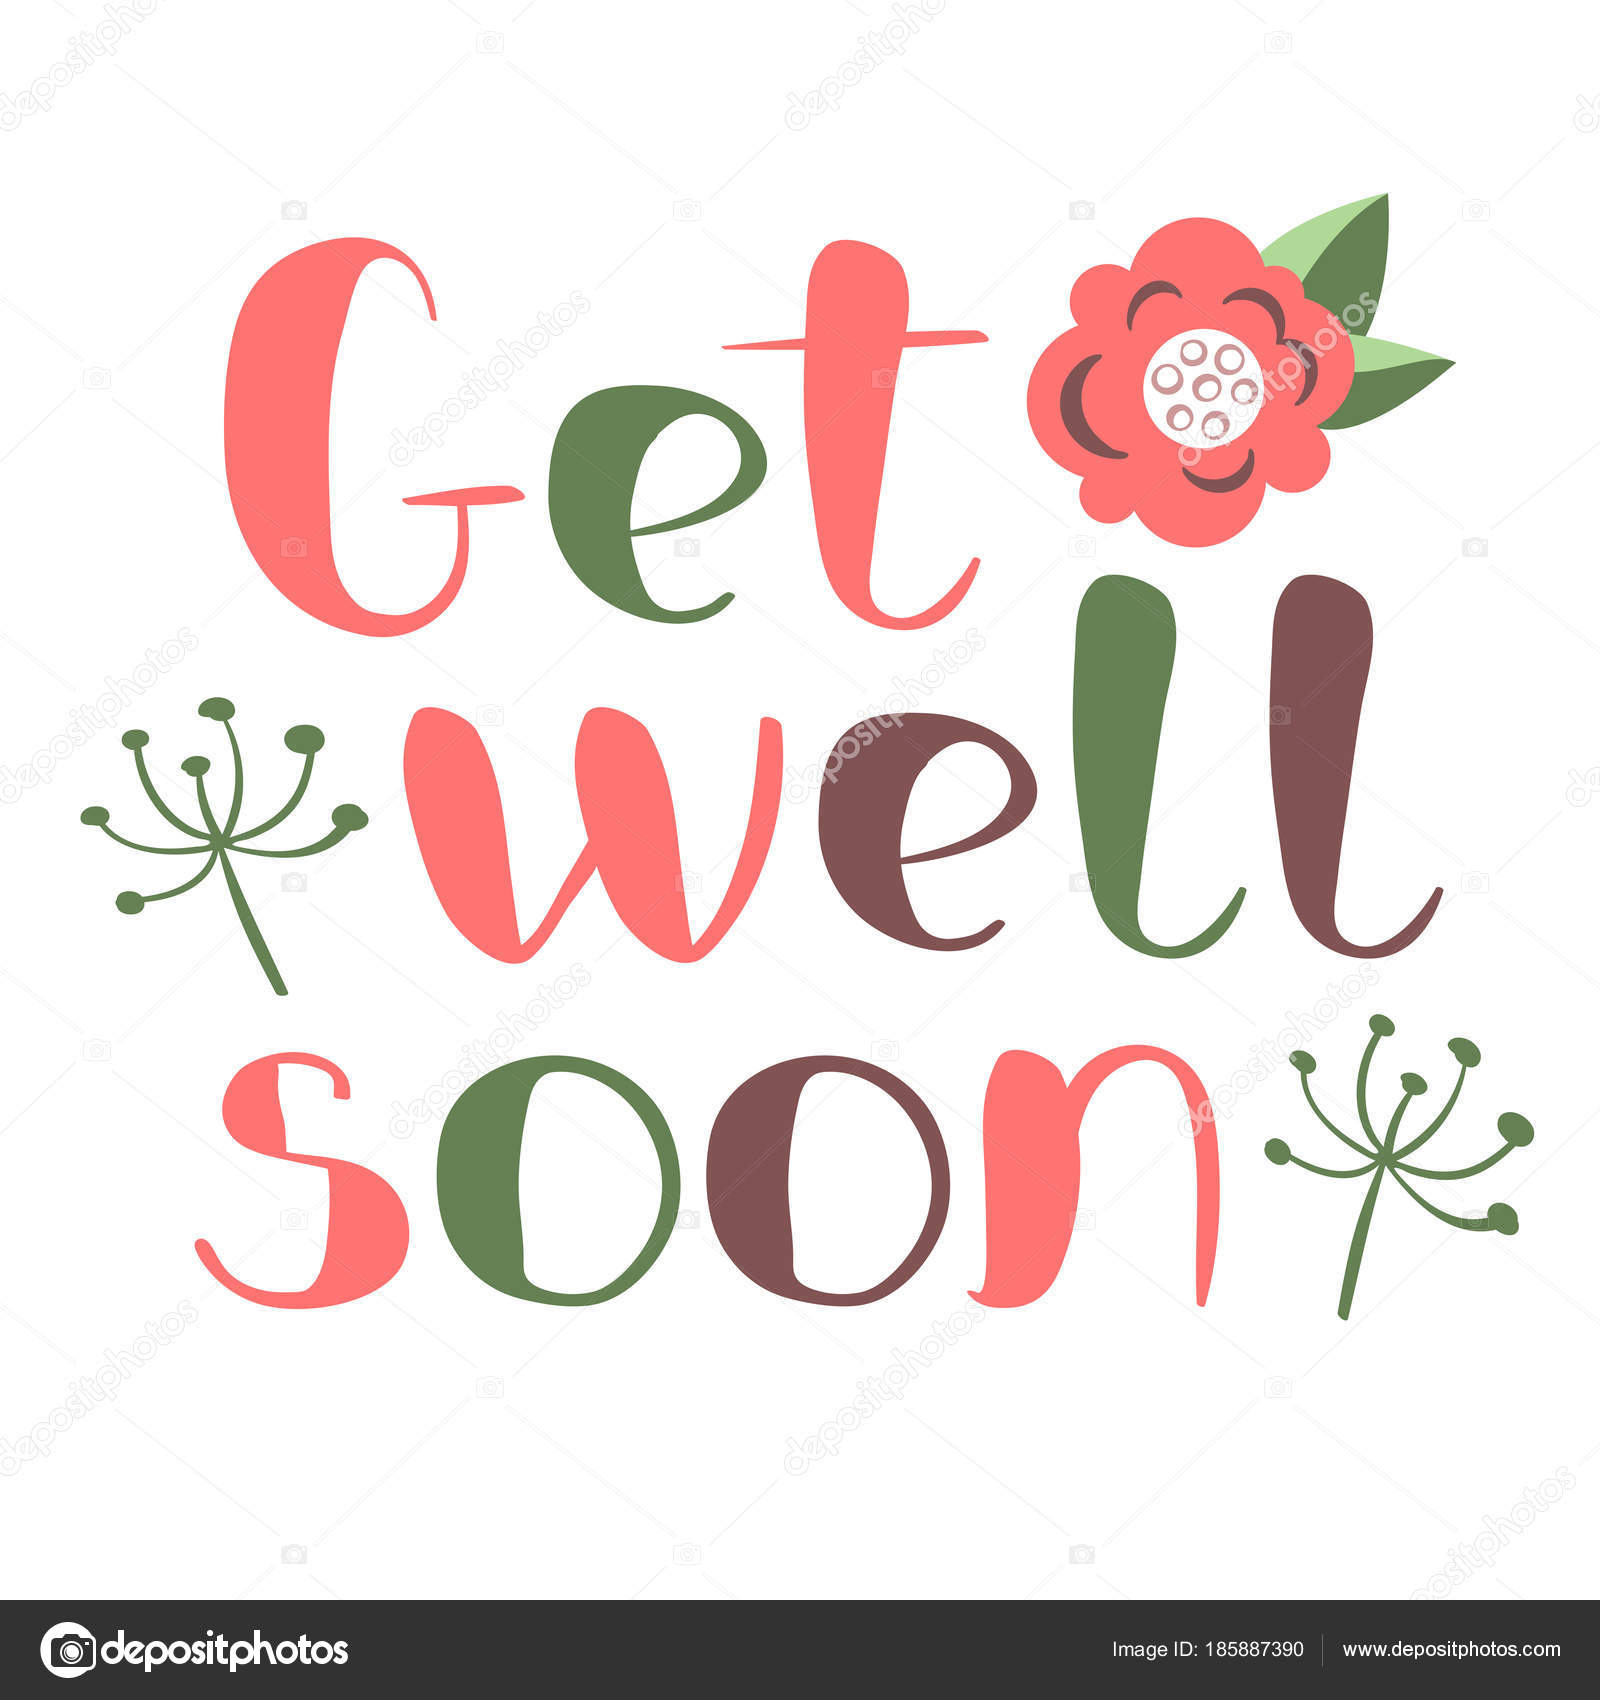 get well soon card with hand drawn lettering decorative poster with handwritten inscription vector graphics illustration editable vector shapes vector